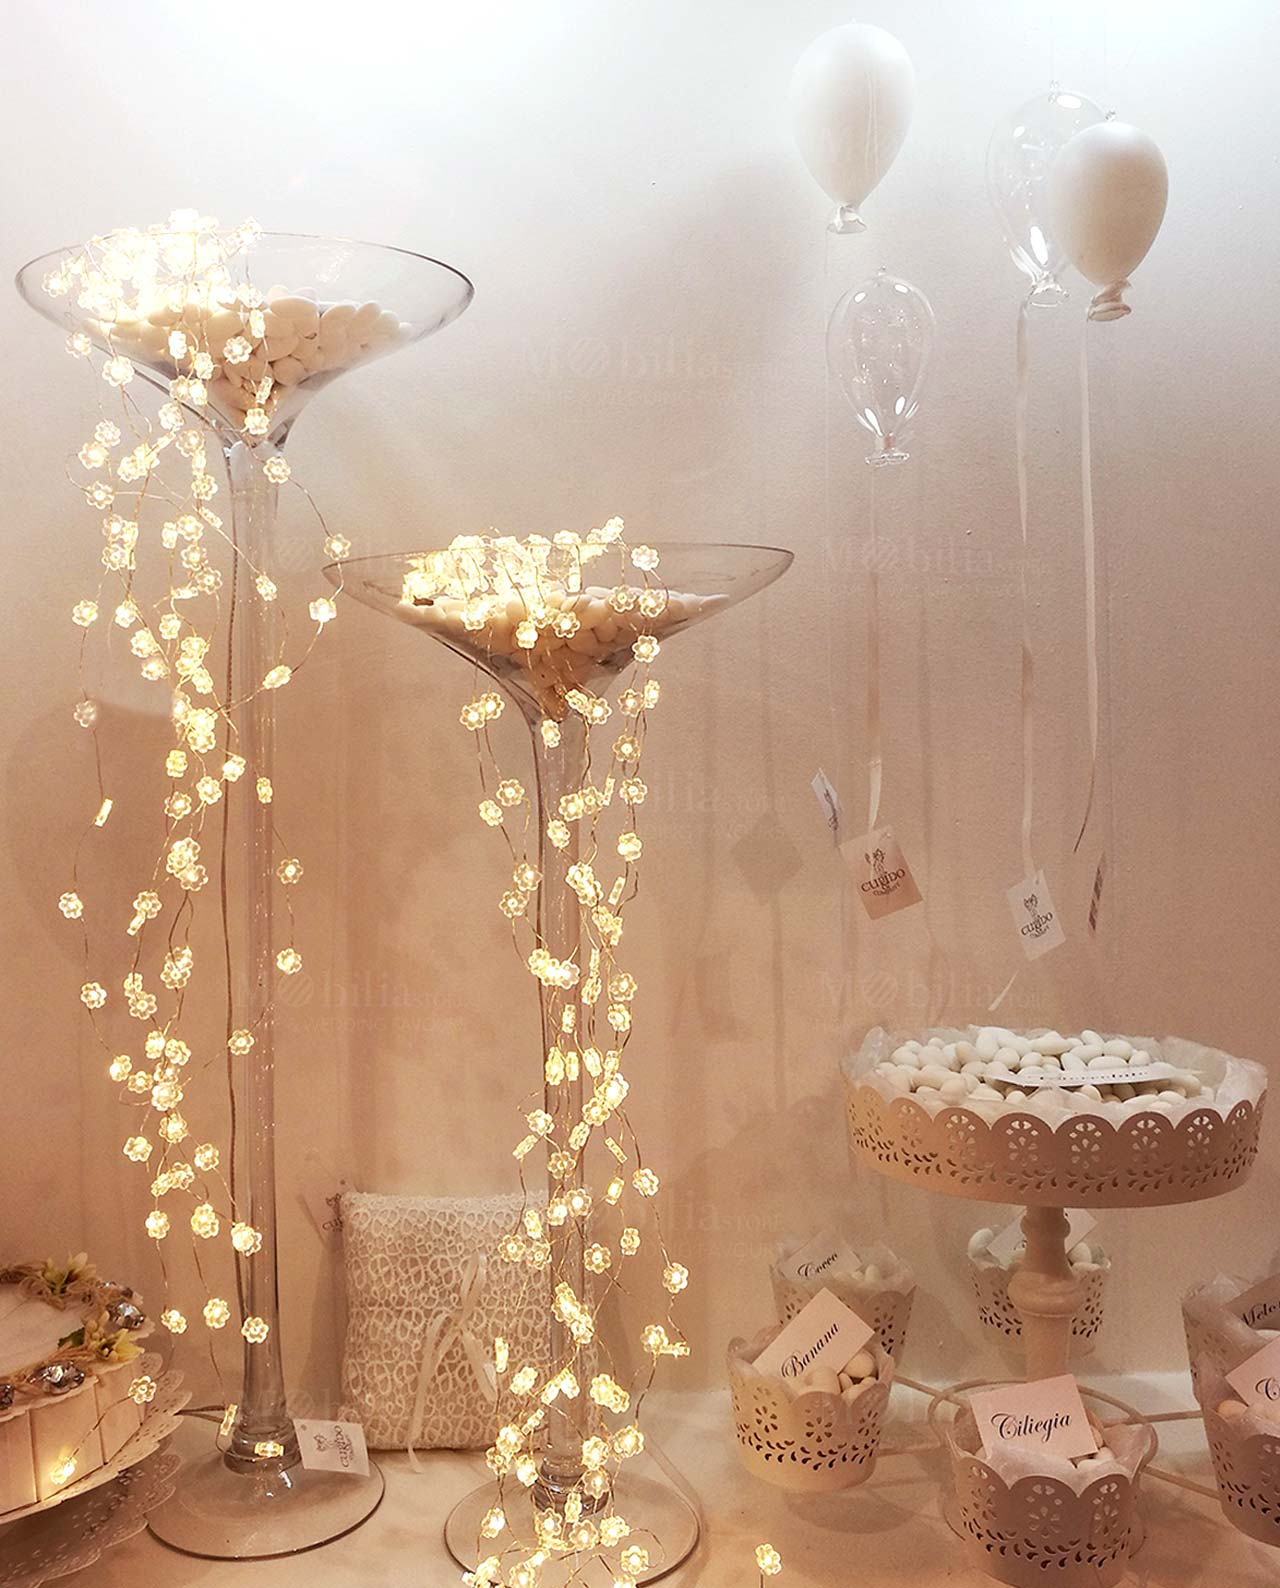 Luci a led con fiori mobilia store home favours for Luci al led